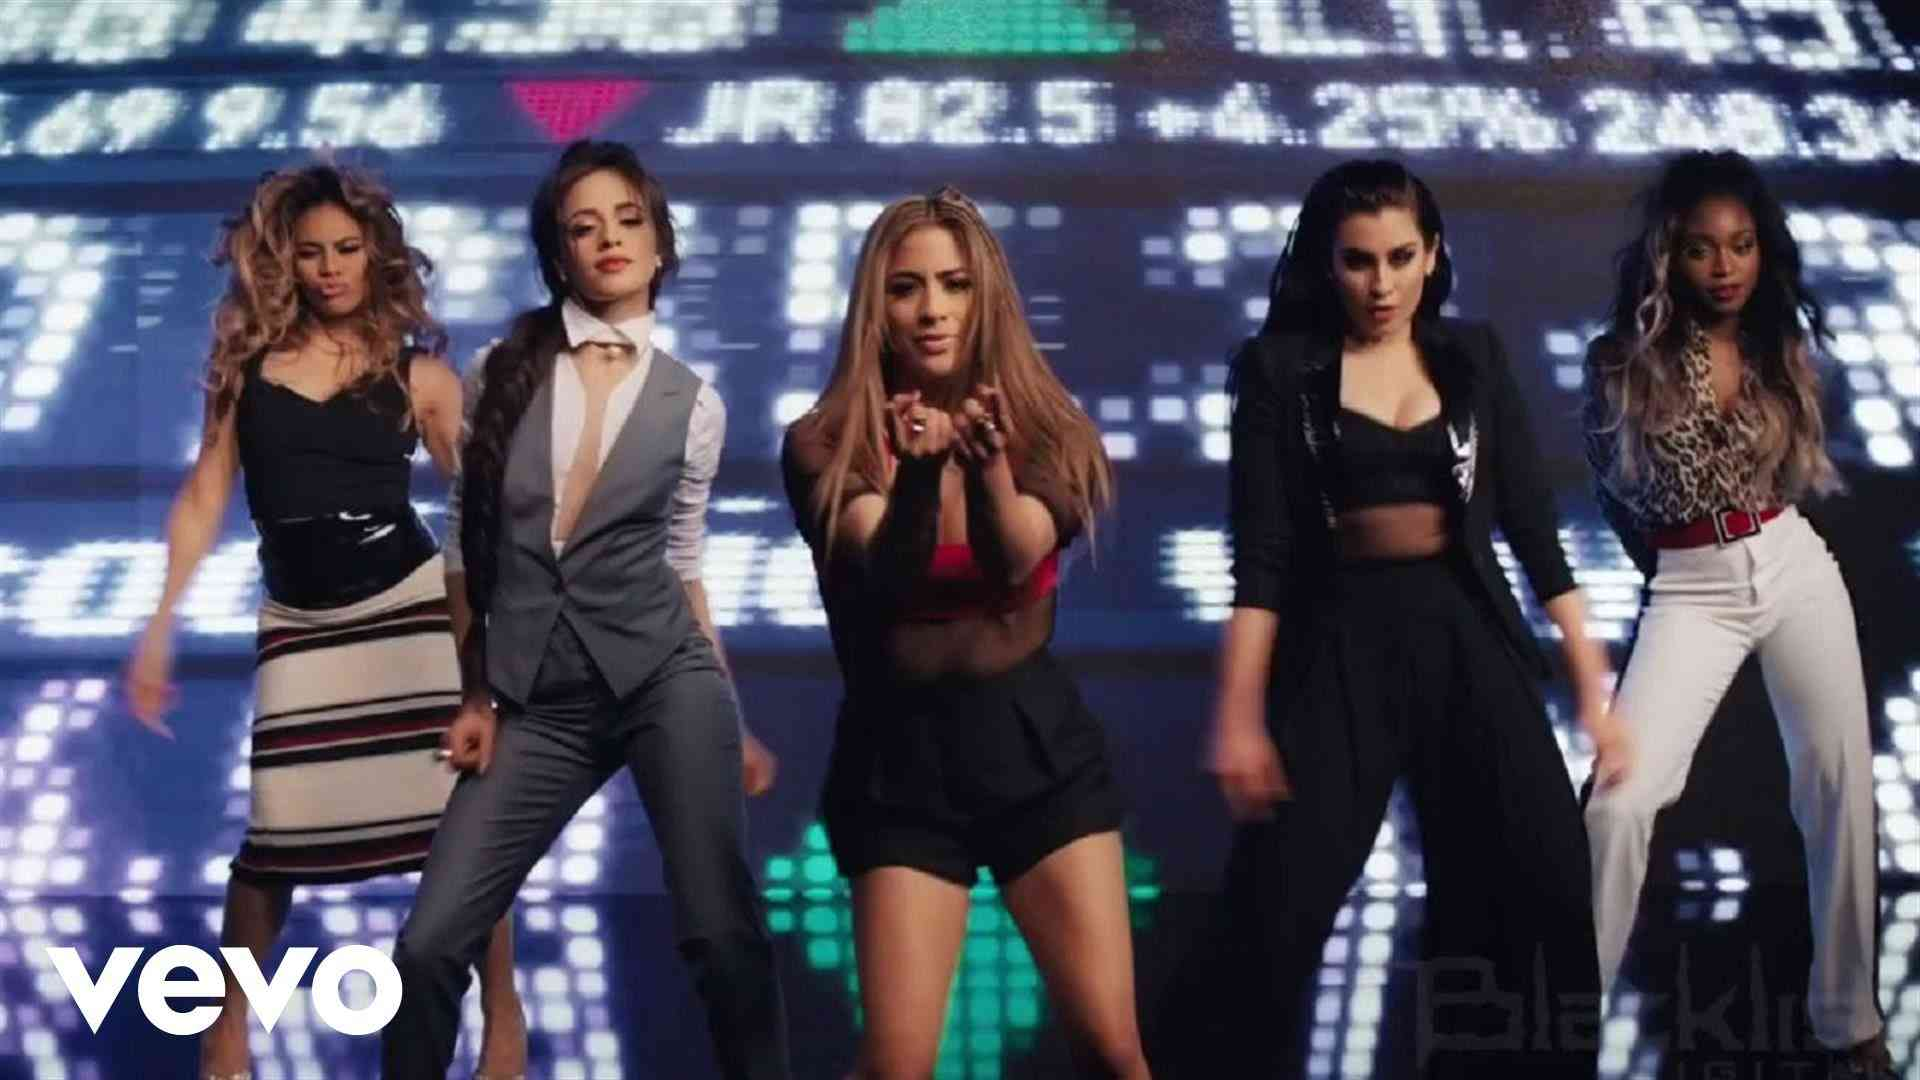 Fifth Harmony - Worth It ft. Kid Ink - YouTube